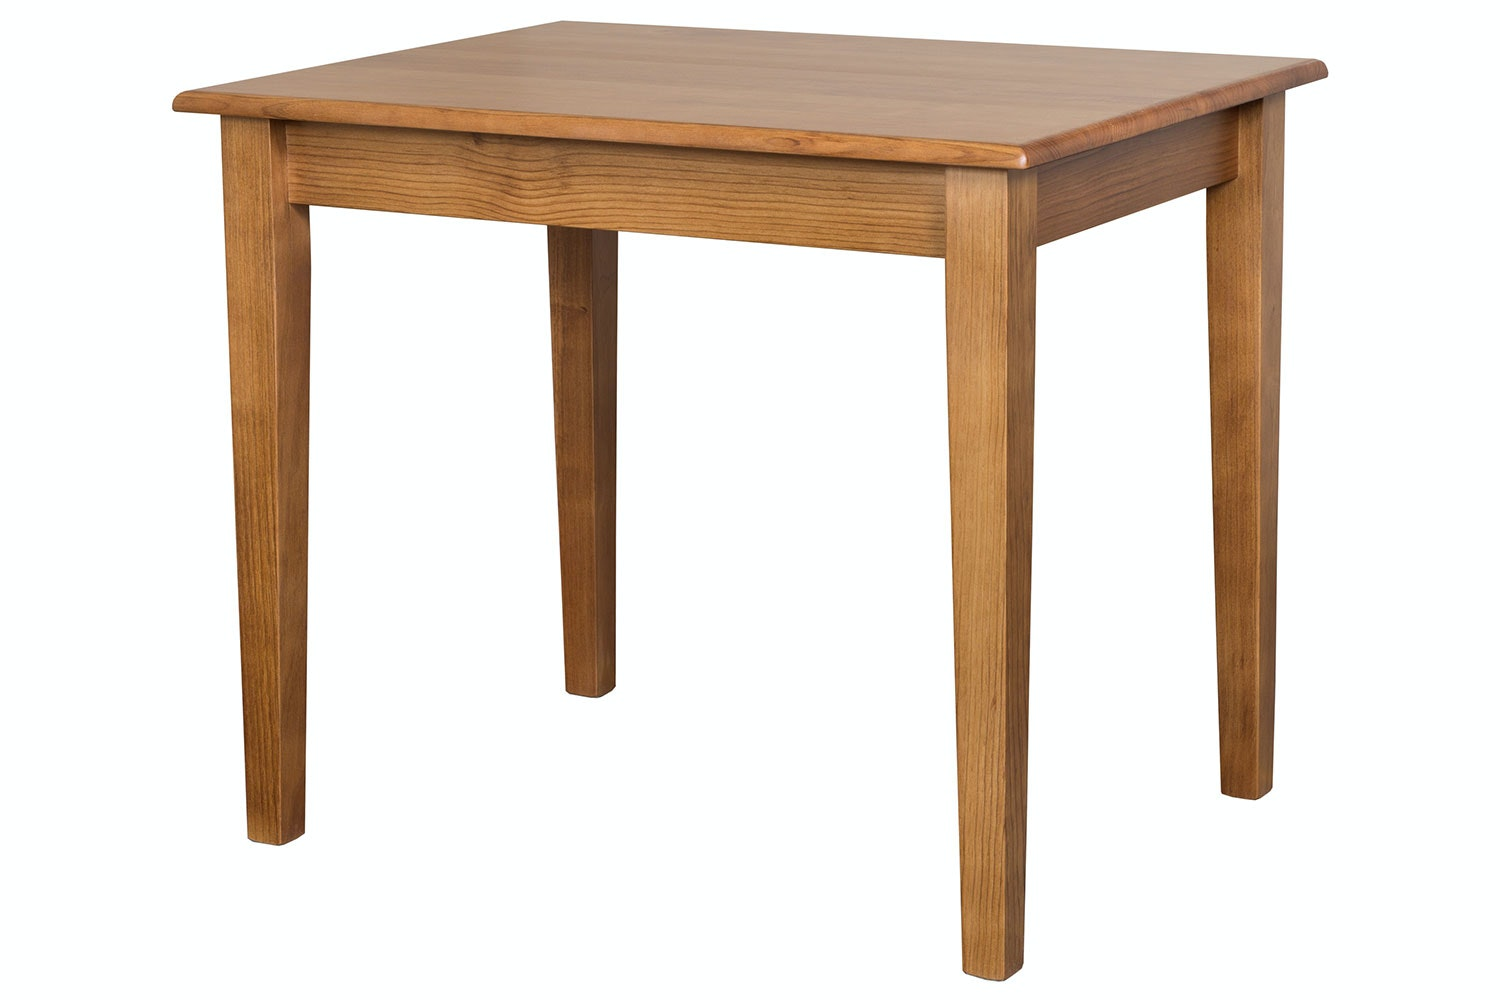 Waihi Dining Table 900x680 by Coastwood Furniture